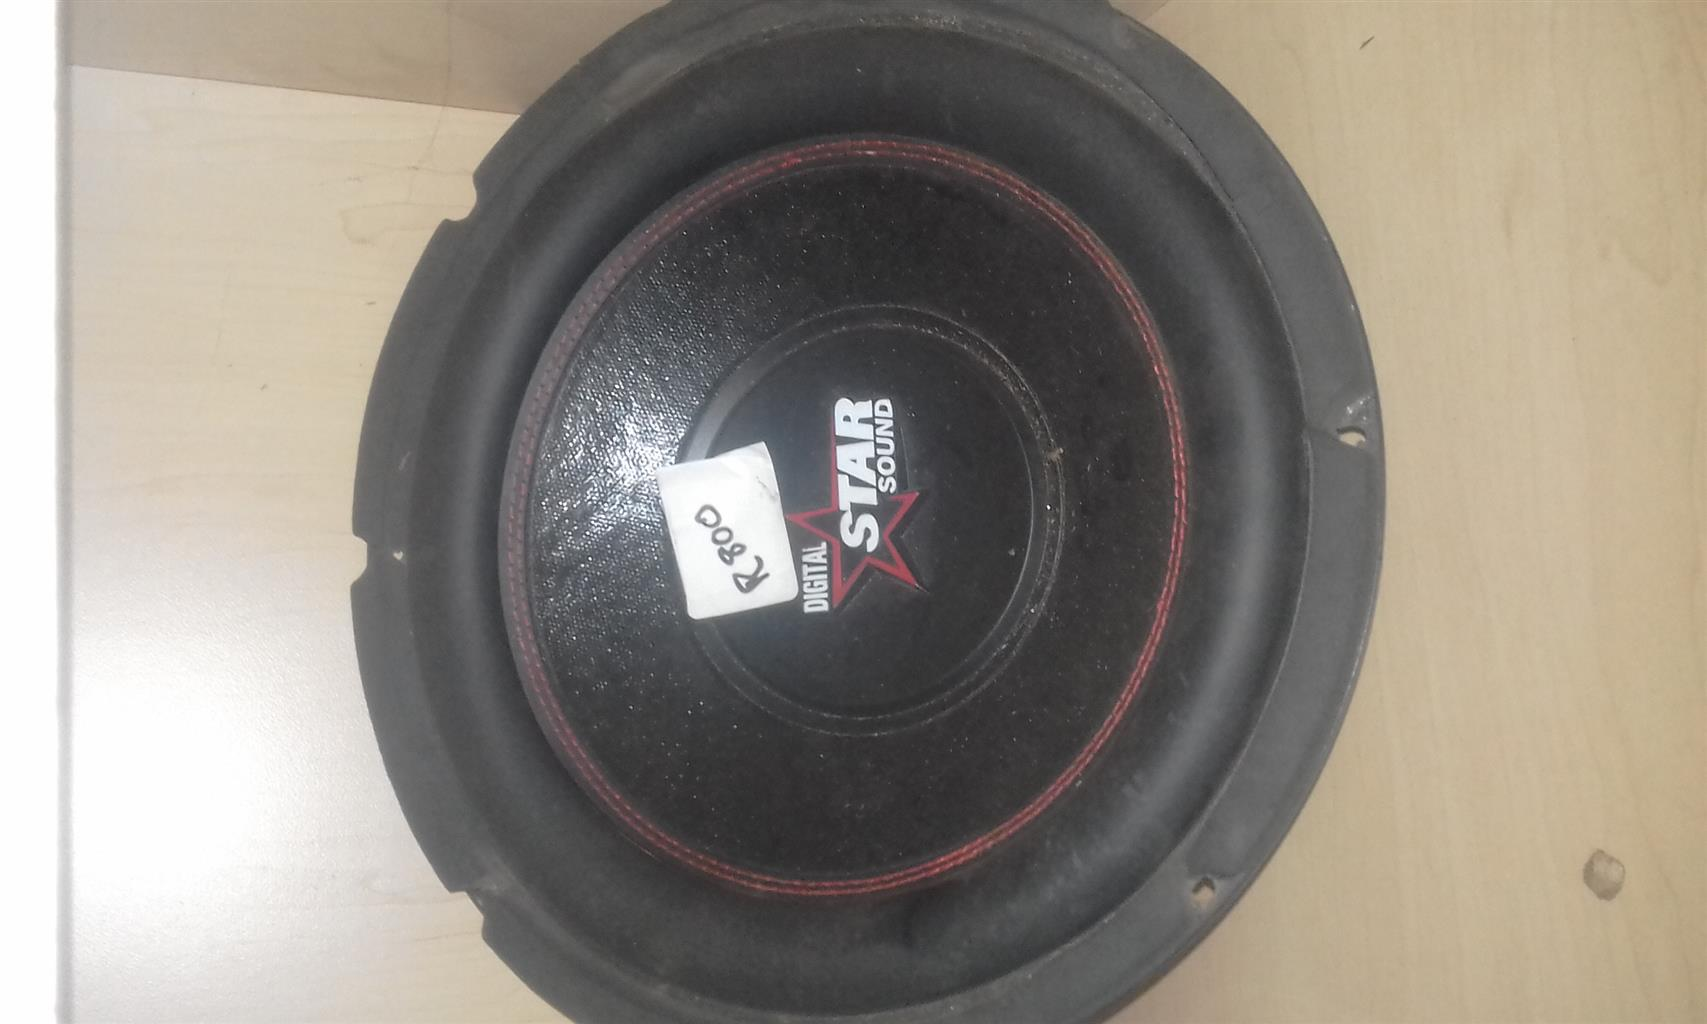 car amp's for sale